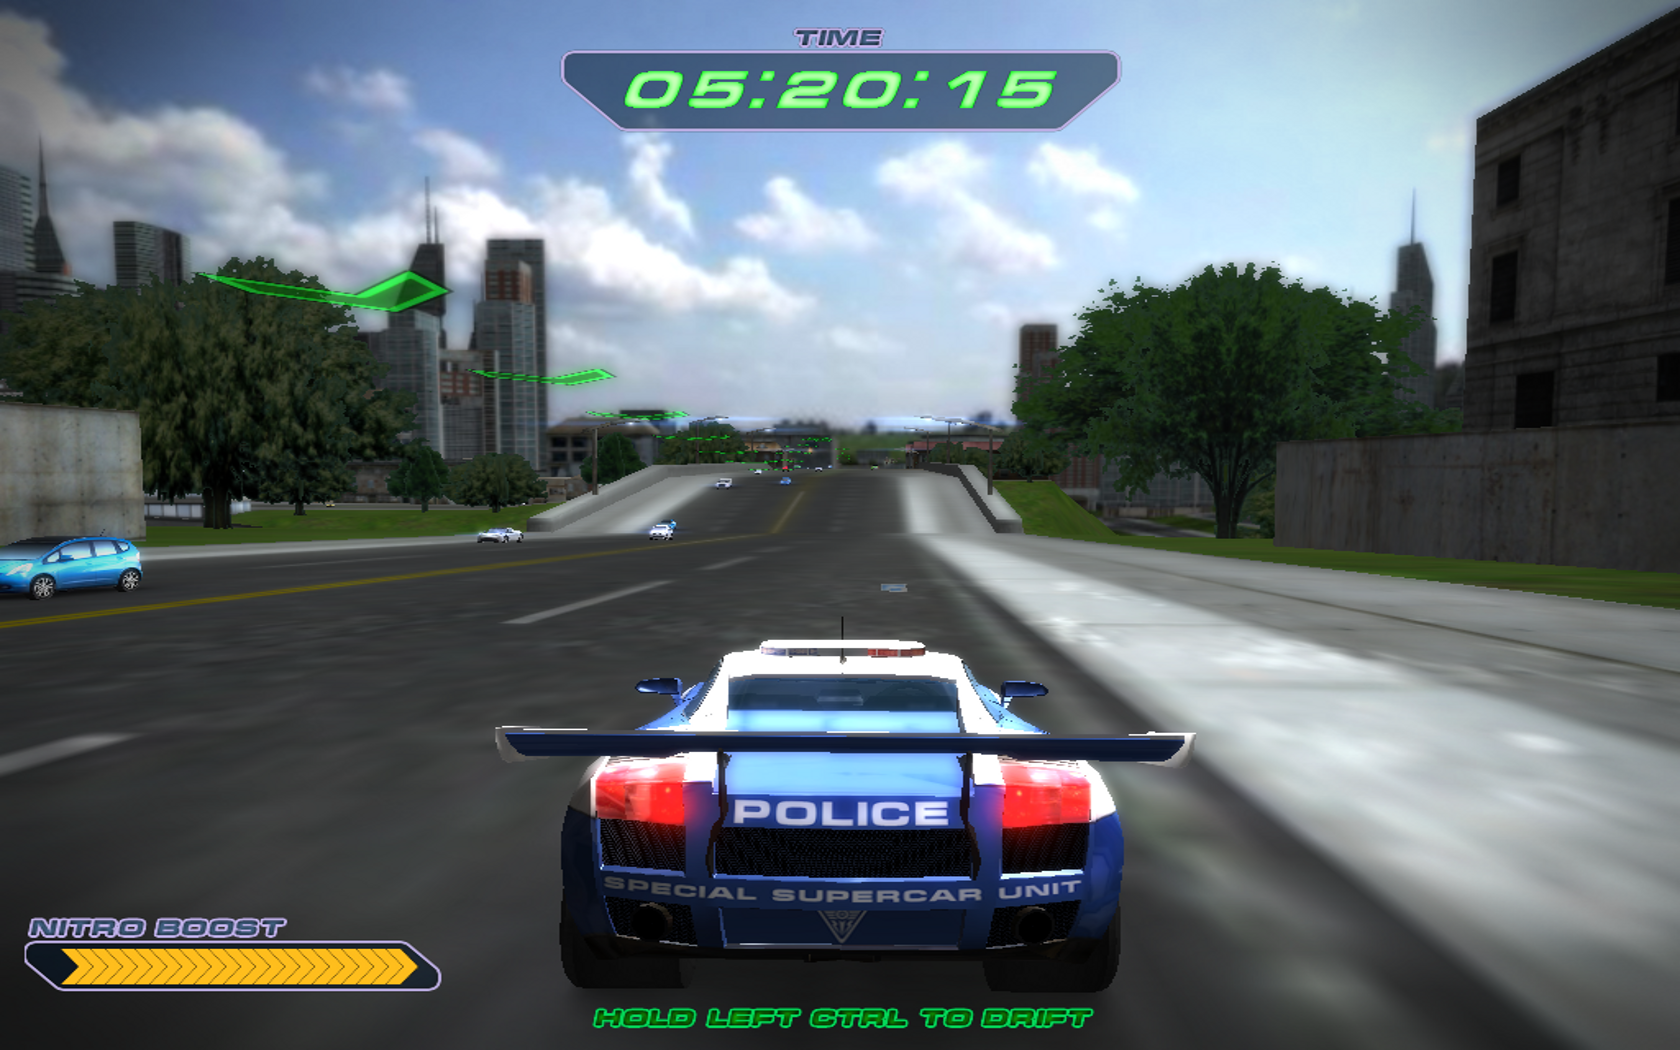 Police Super Cars Racing Free Download Super Cars Police Racing